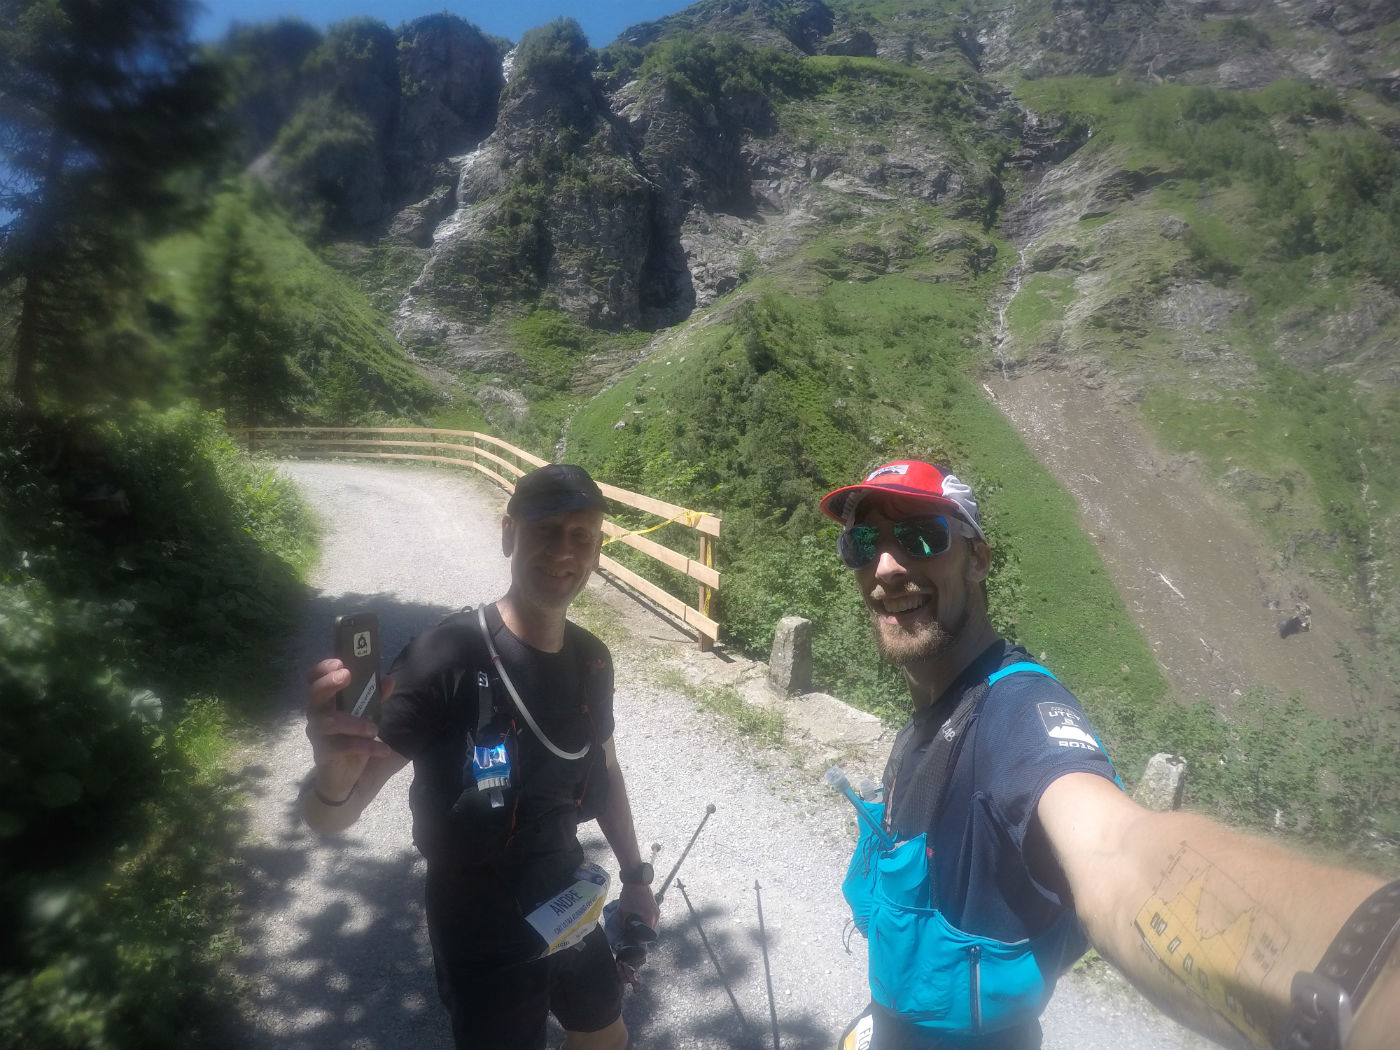 Taking a selfie with another runner during the Infinite Trails World Championships